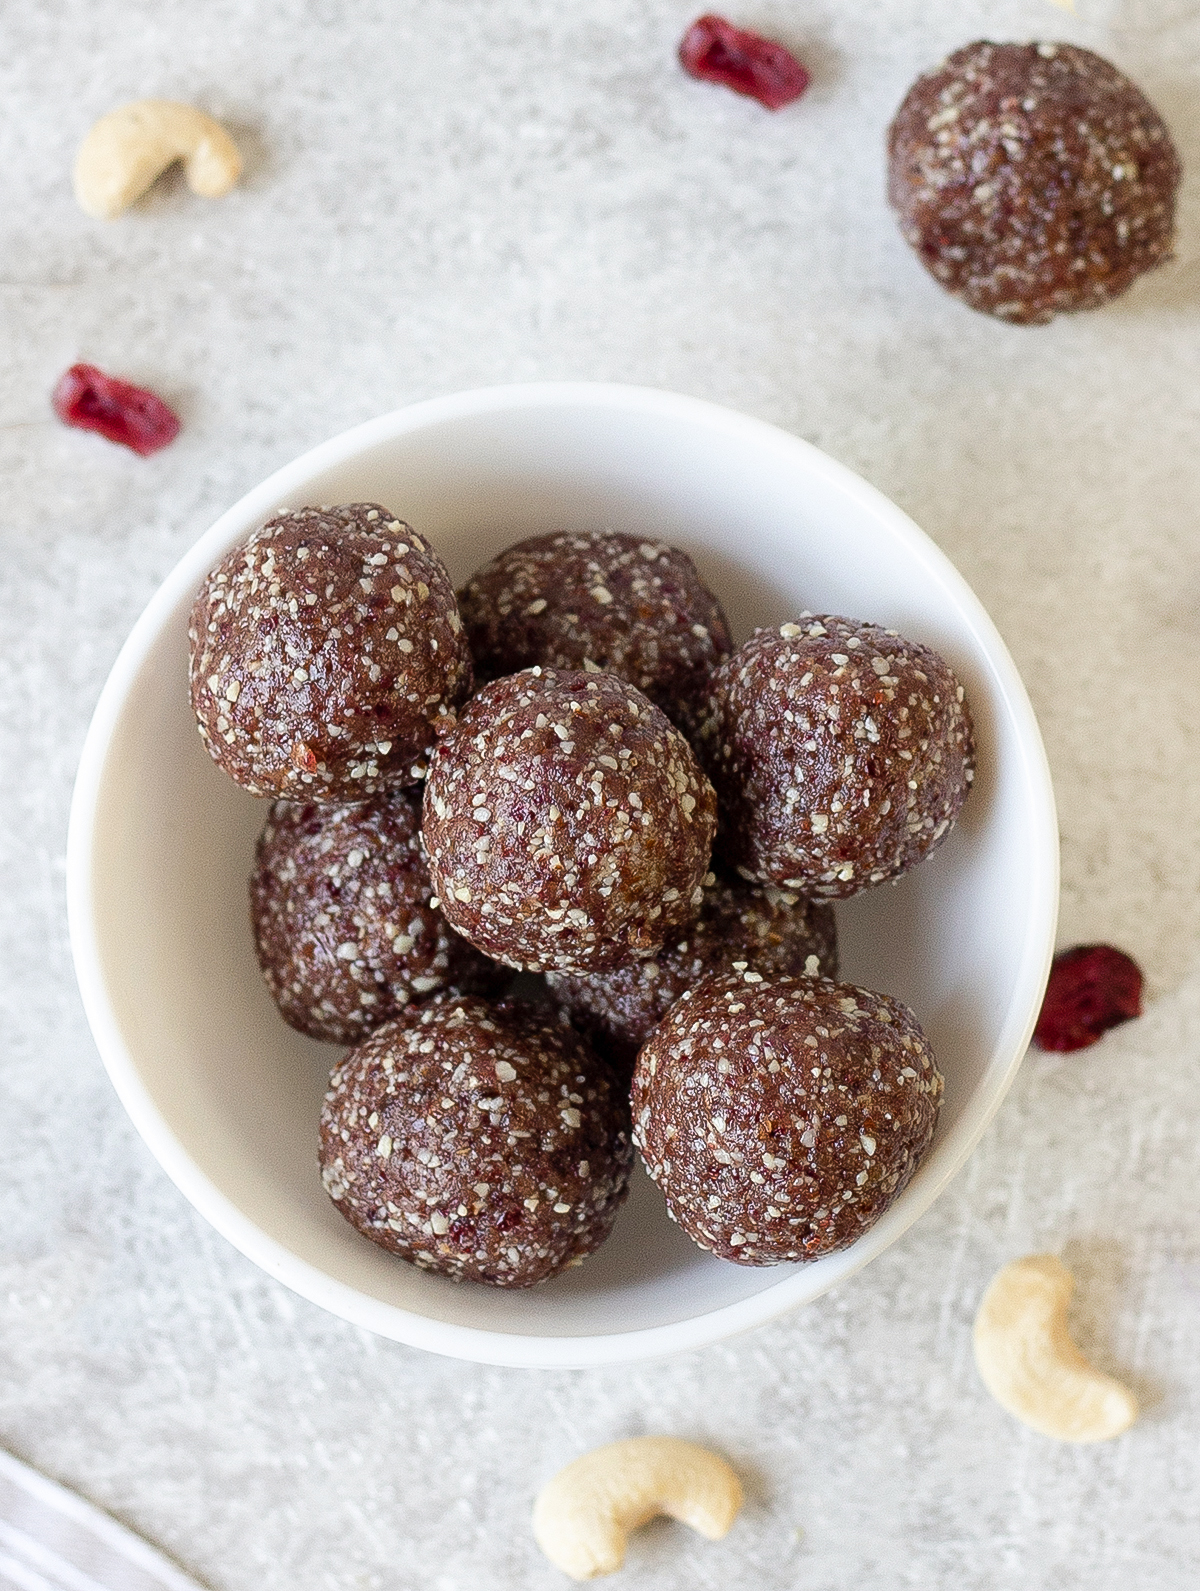 Nuts and Date Energy Balls